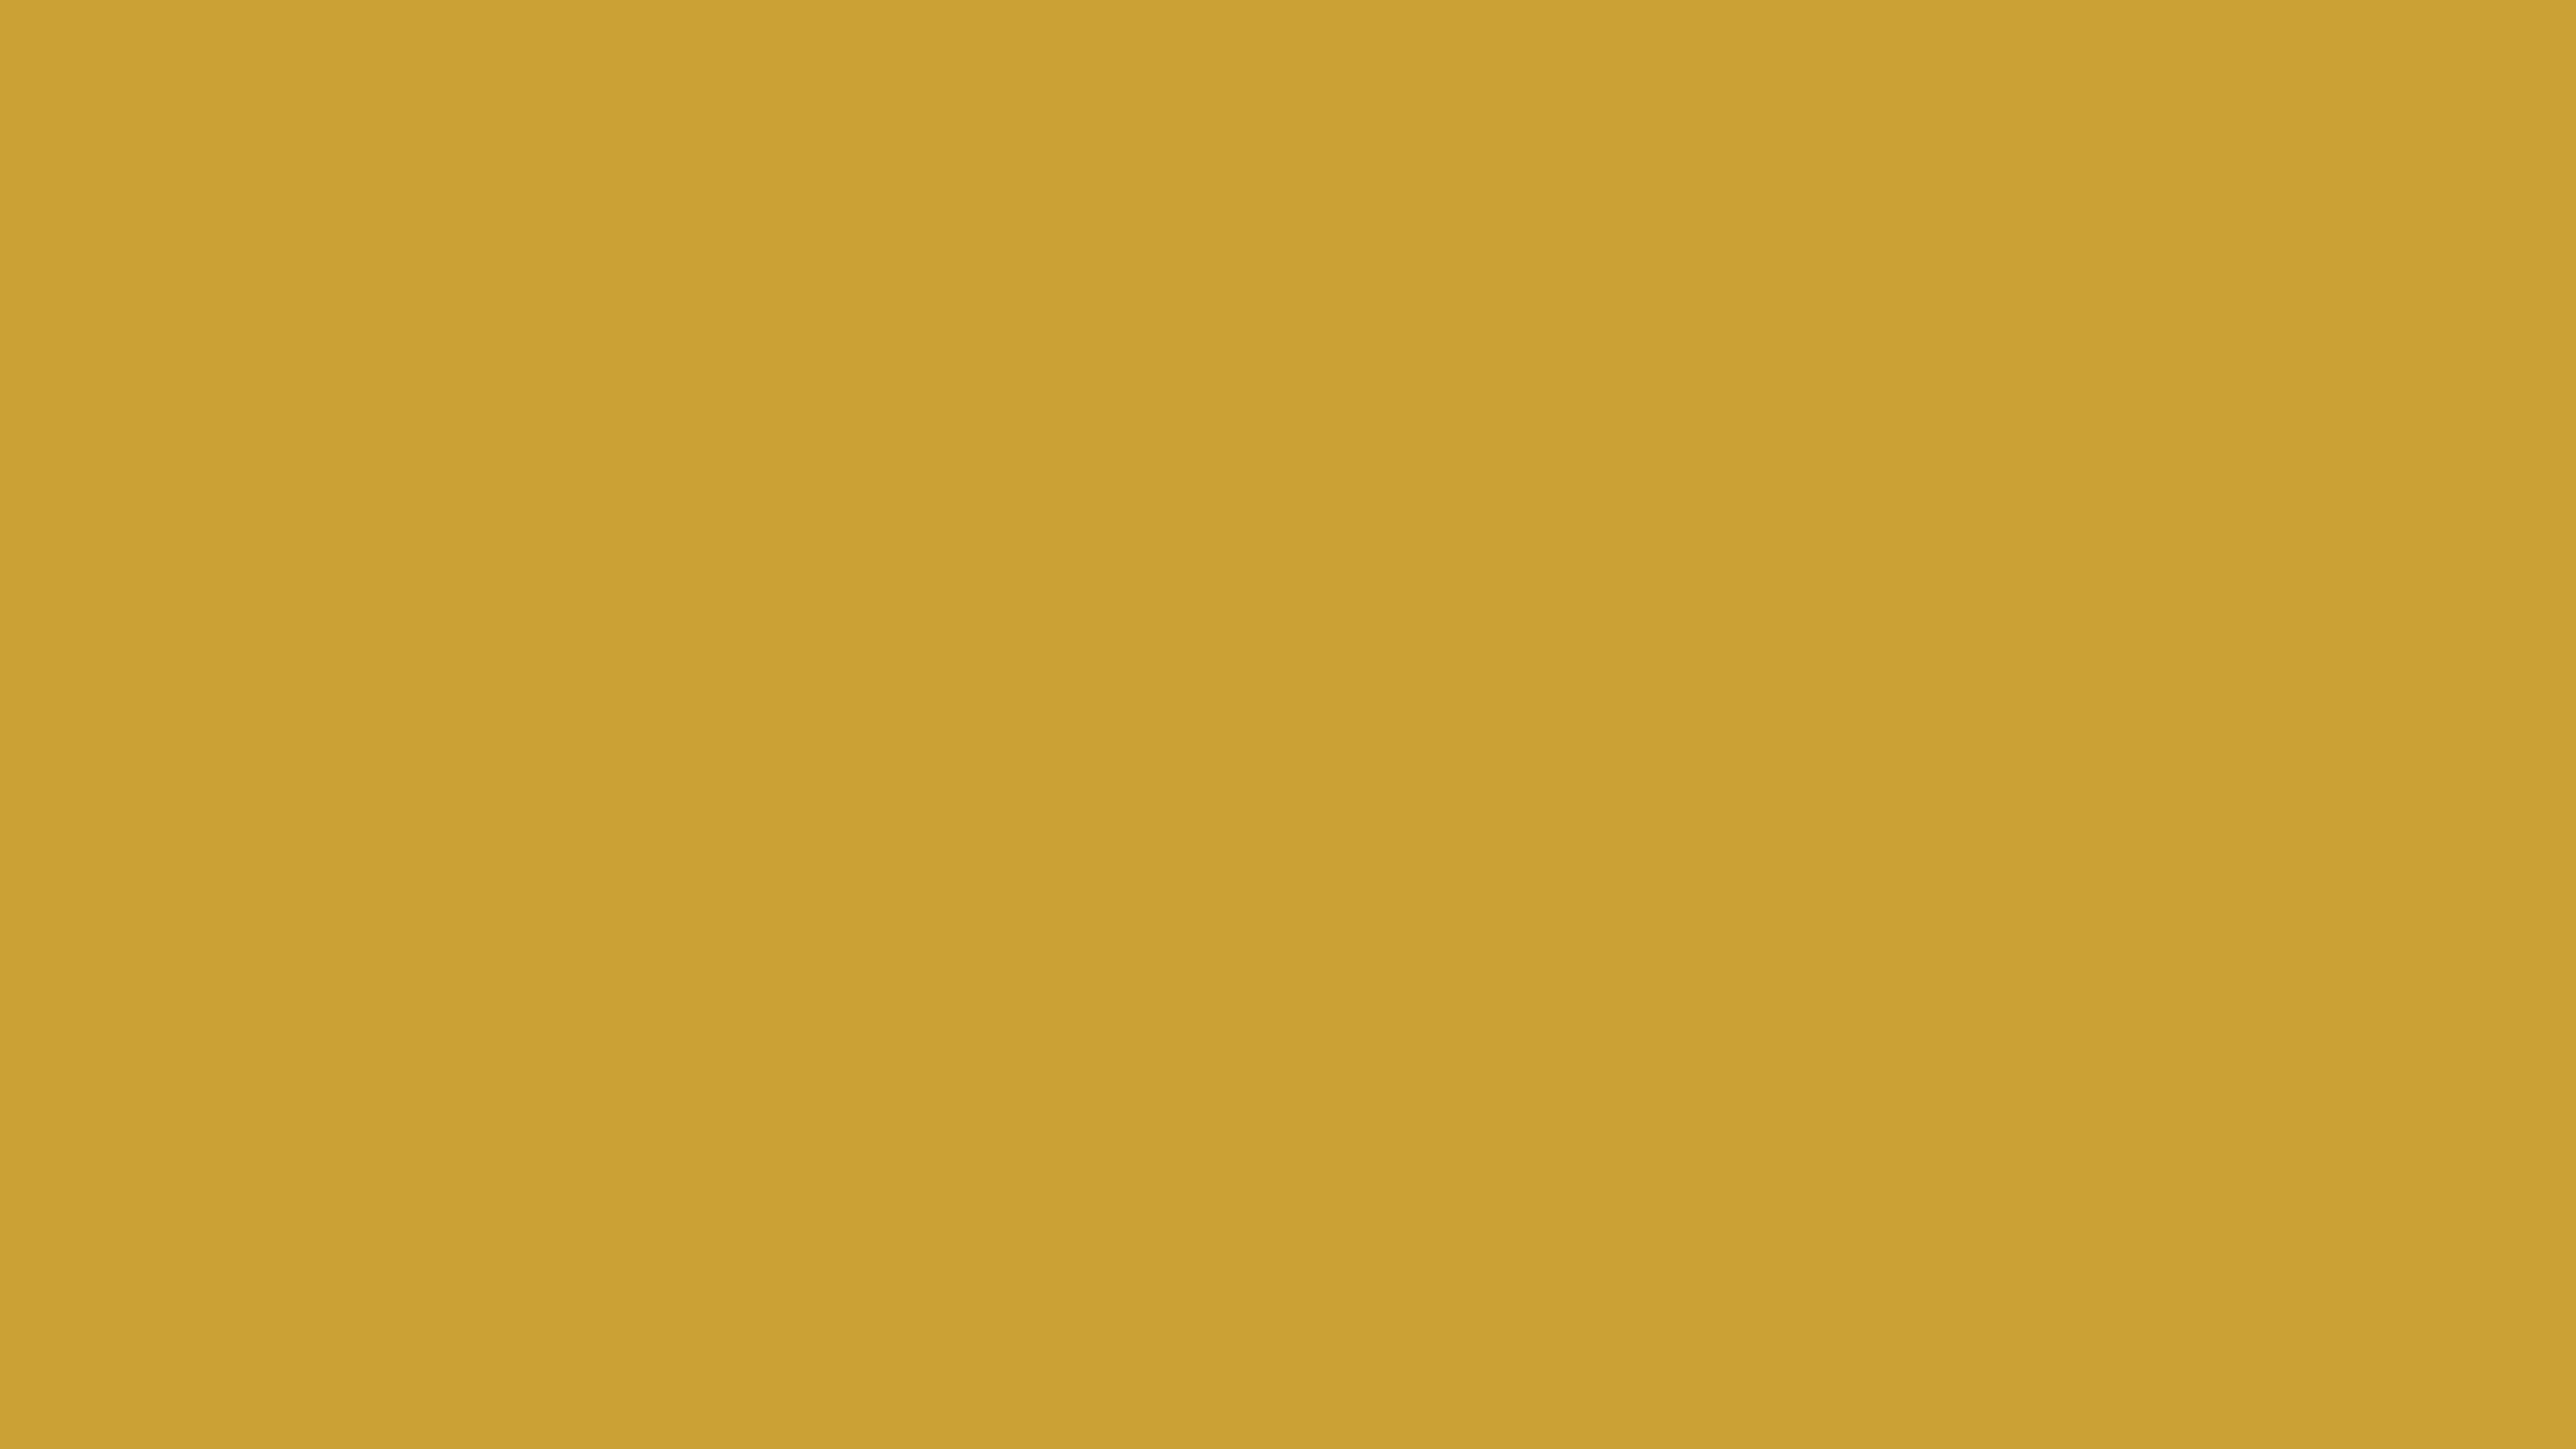 satin sheen gold solid color background wallpaper 5120x2880